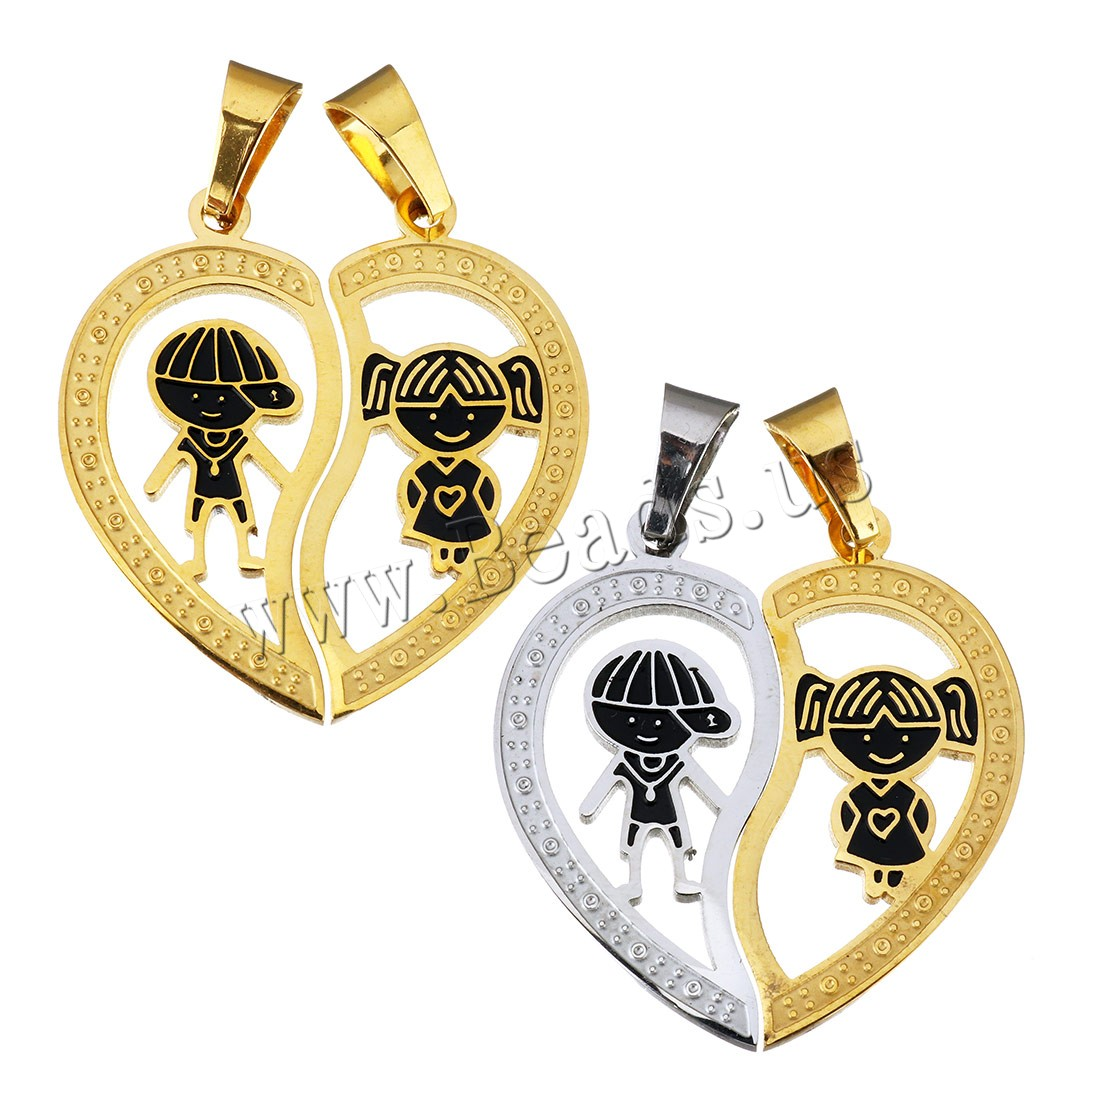 Buy Stainless Steel Puzzle Couple Pendant Heart plated enamel colors choice 16x34x6.5mm 16x34x6.5mm Hole:Approx 5.5x9mm Sold Lot